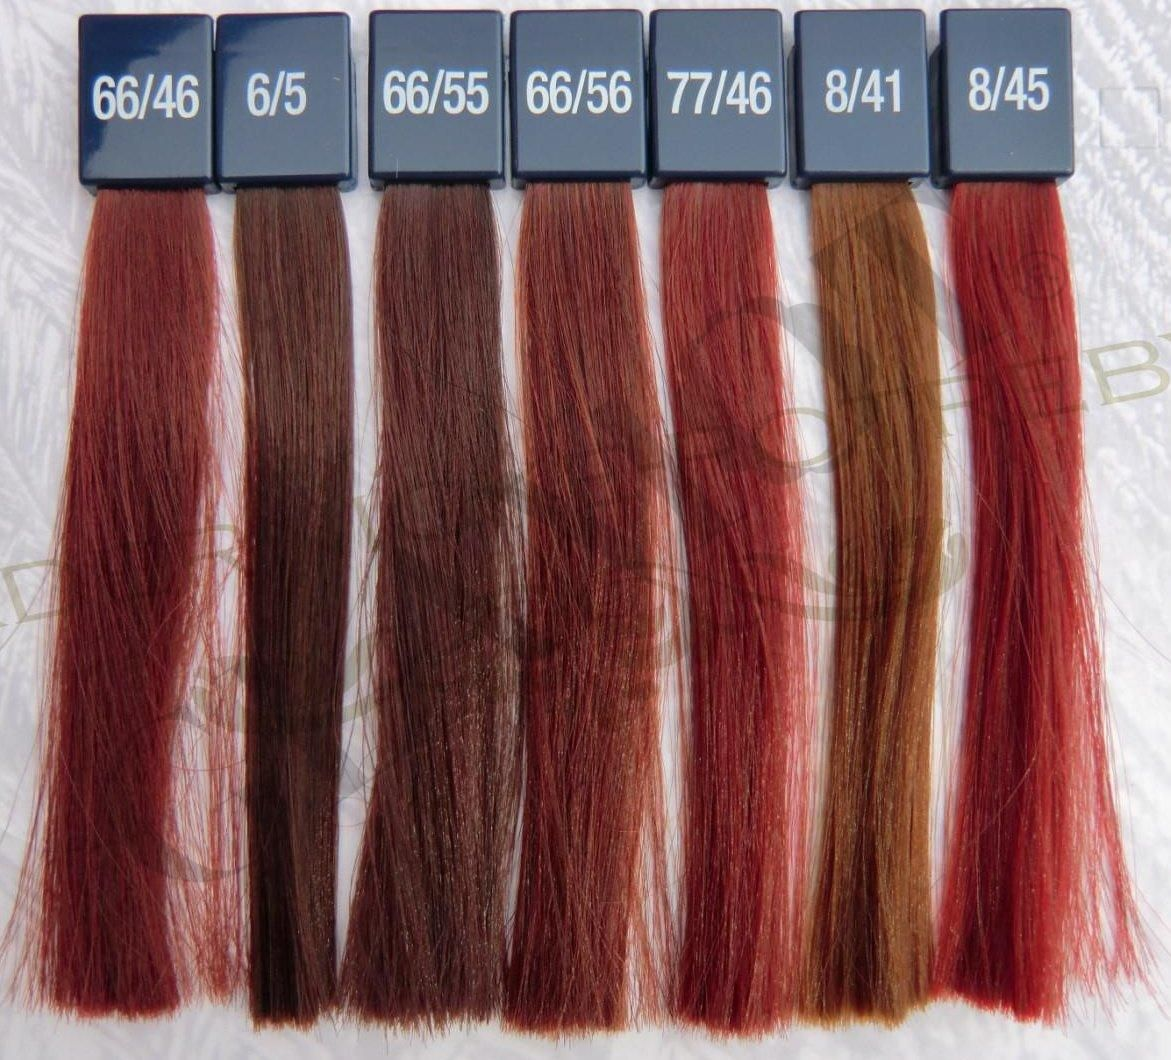 Wella koleston perfect vibrant reds glamot colour chart hair color charts also beauty stuff in rh pinterest